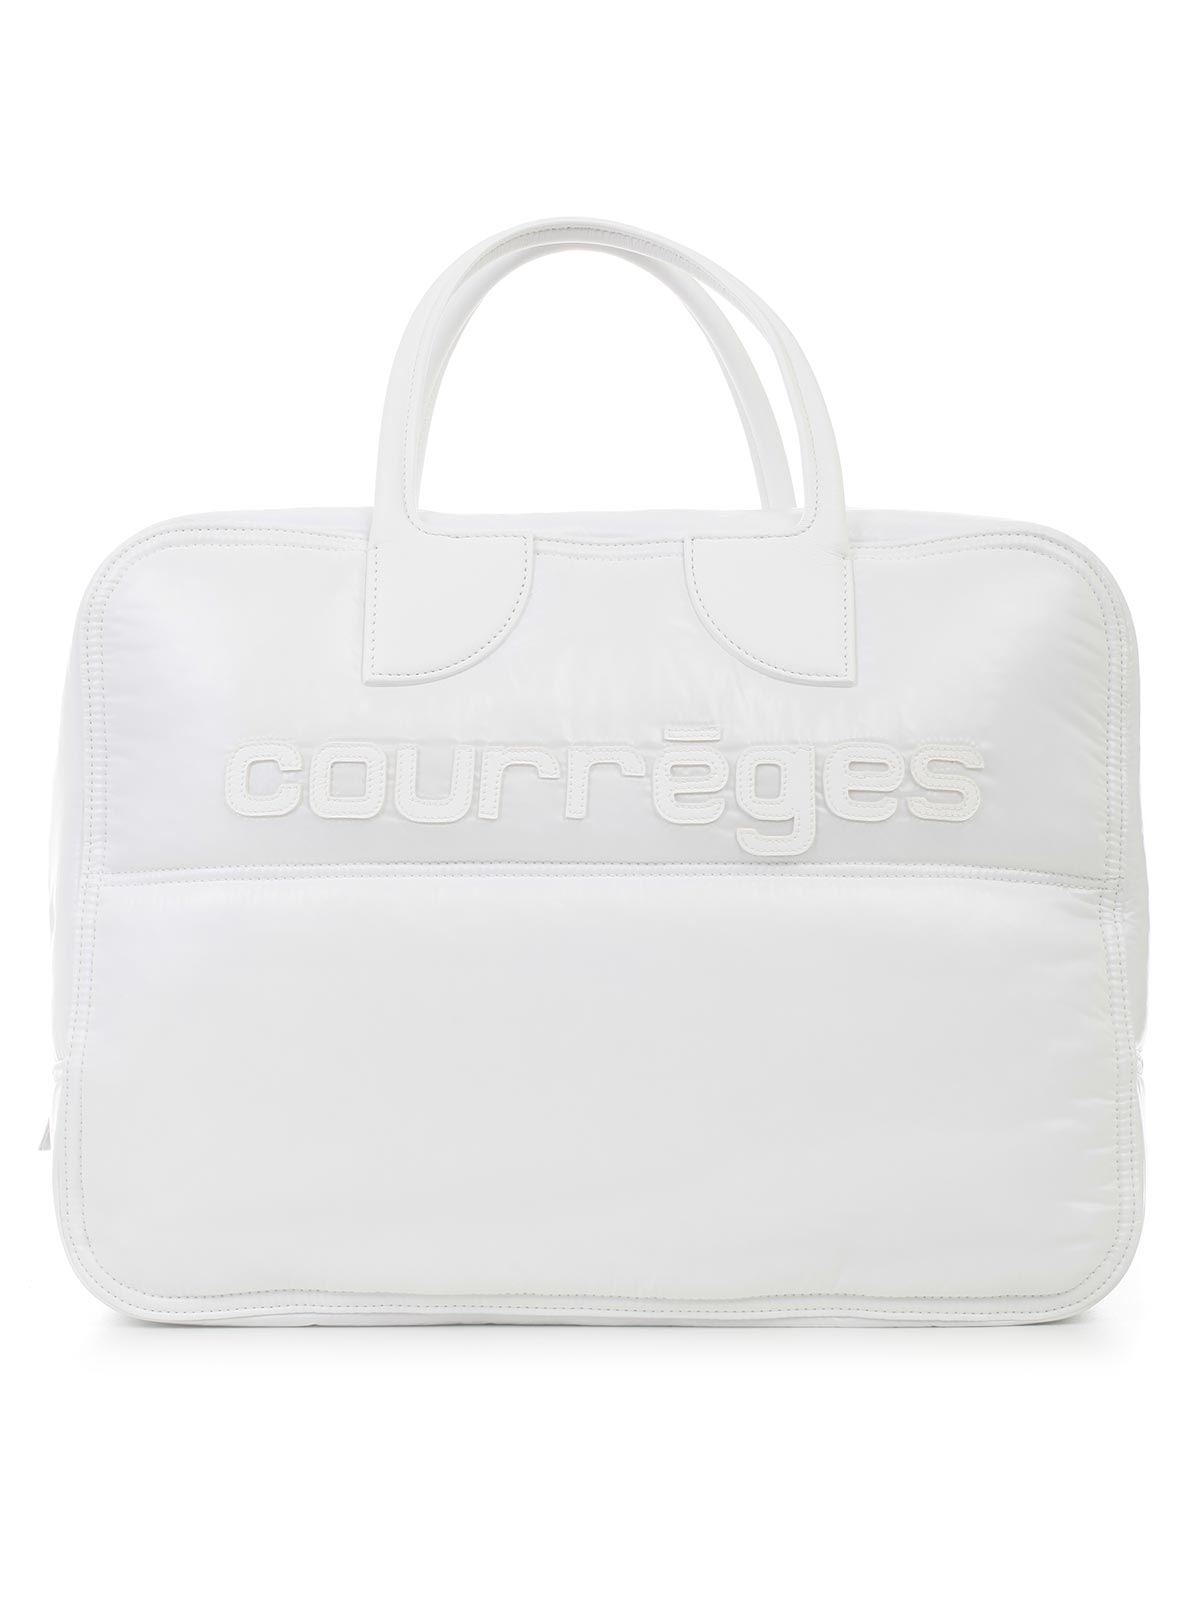 Picture of COURREGES BAG